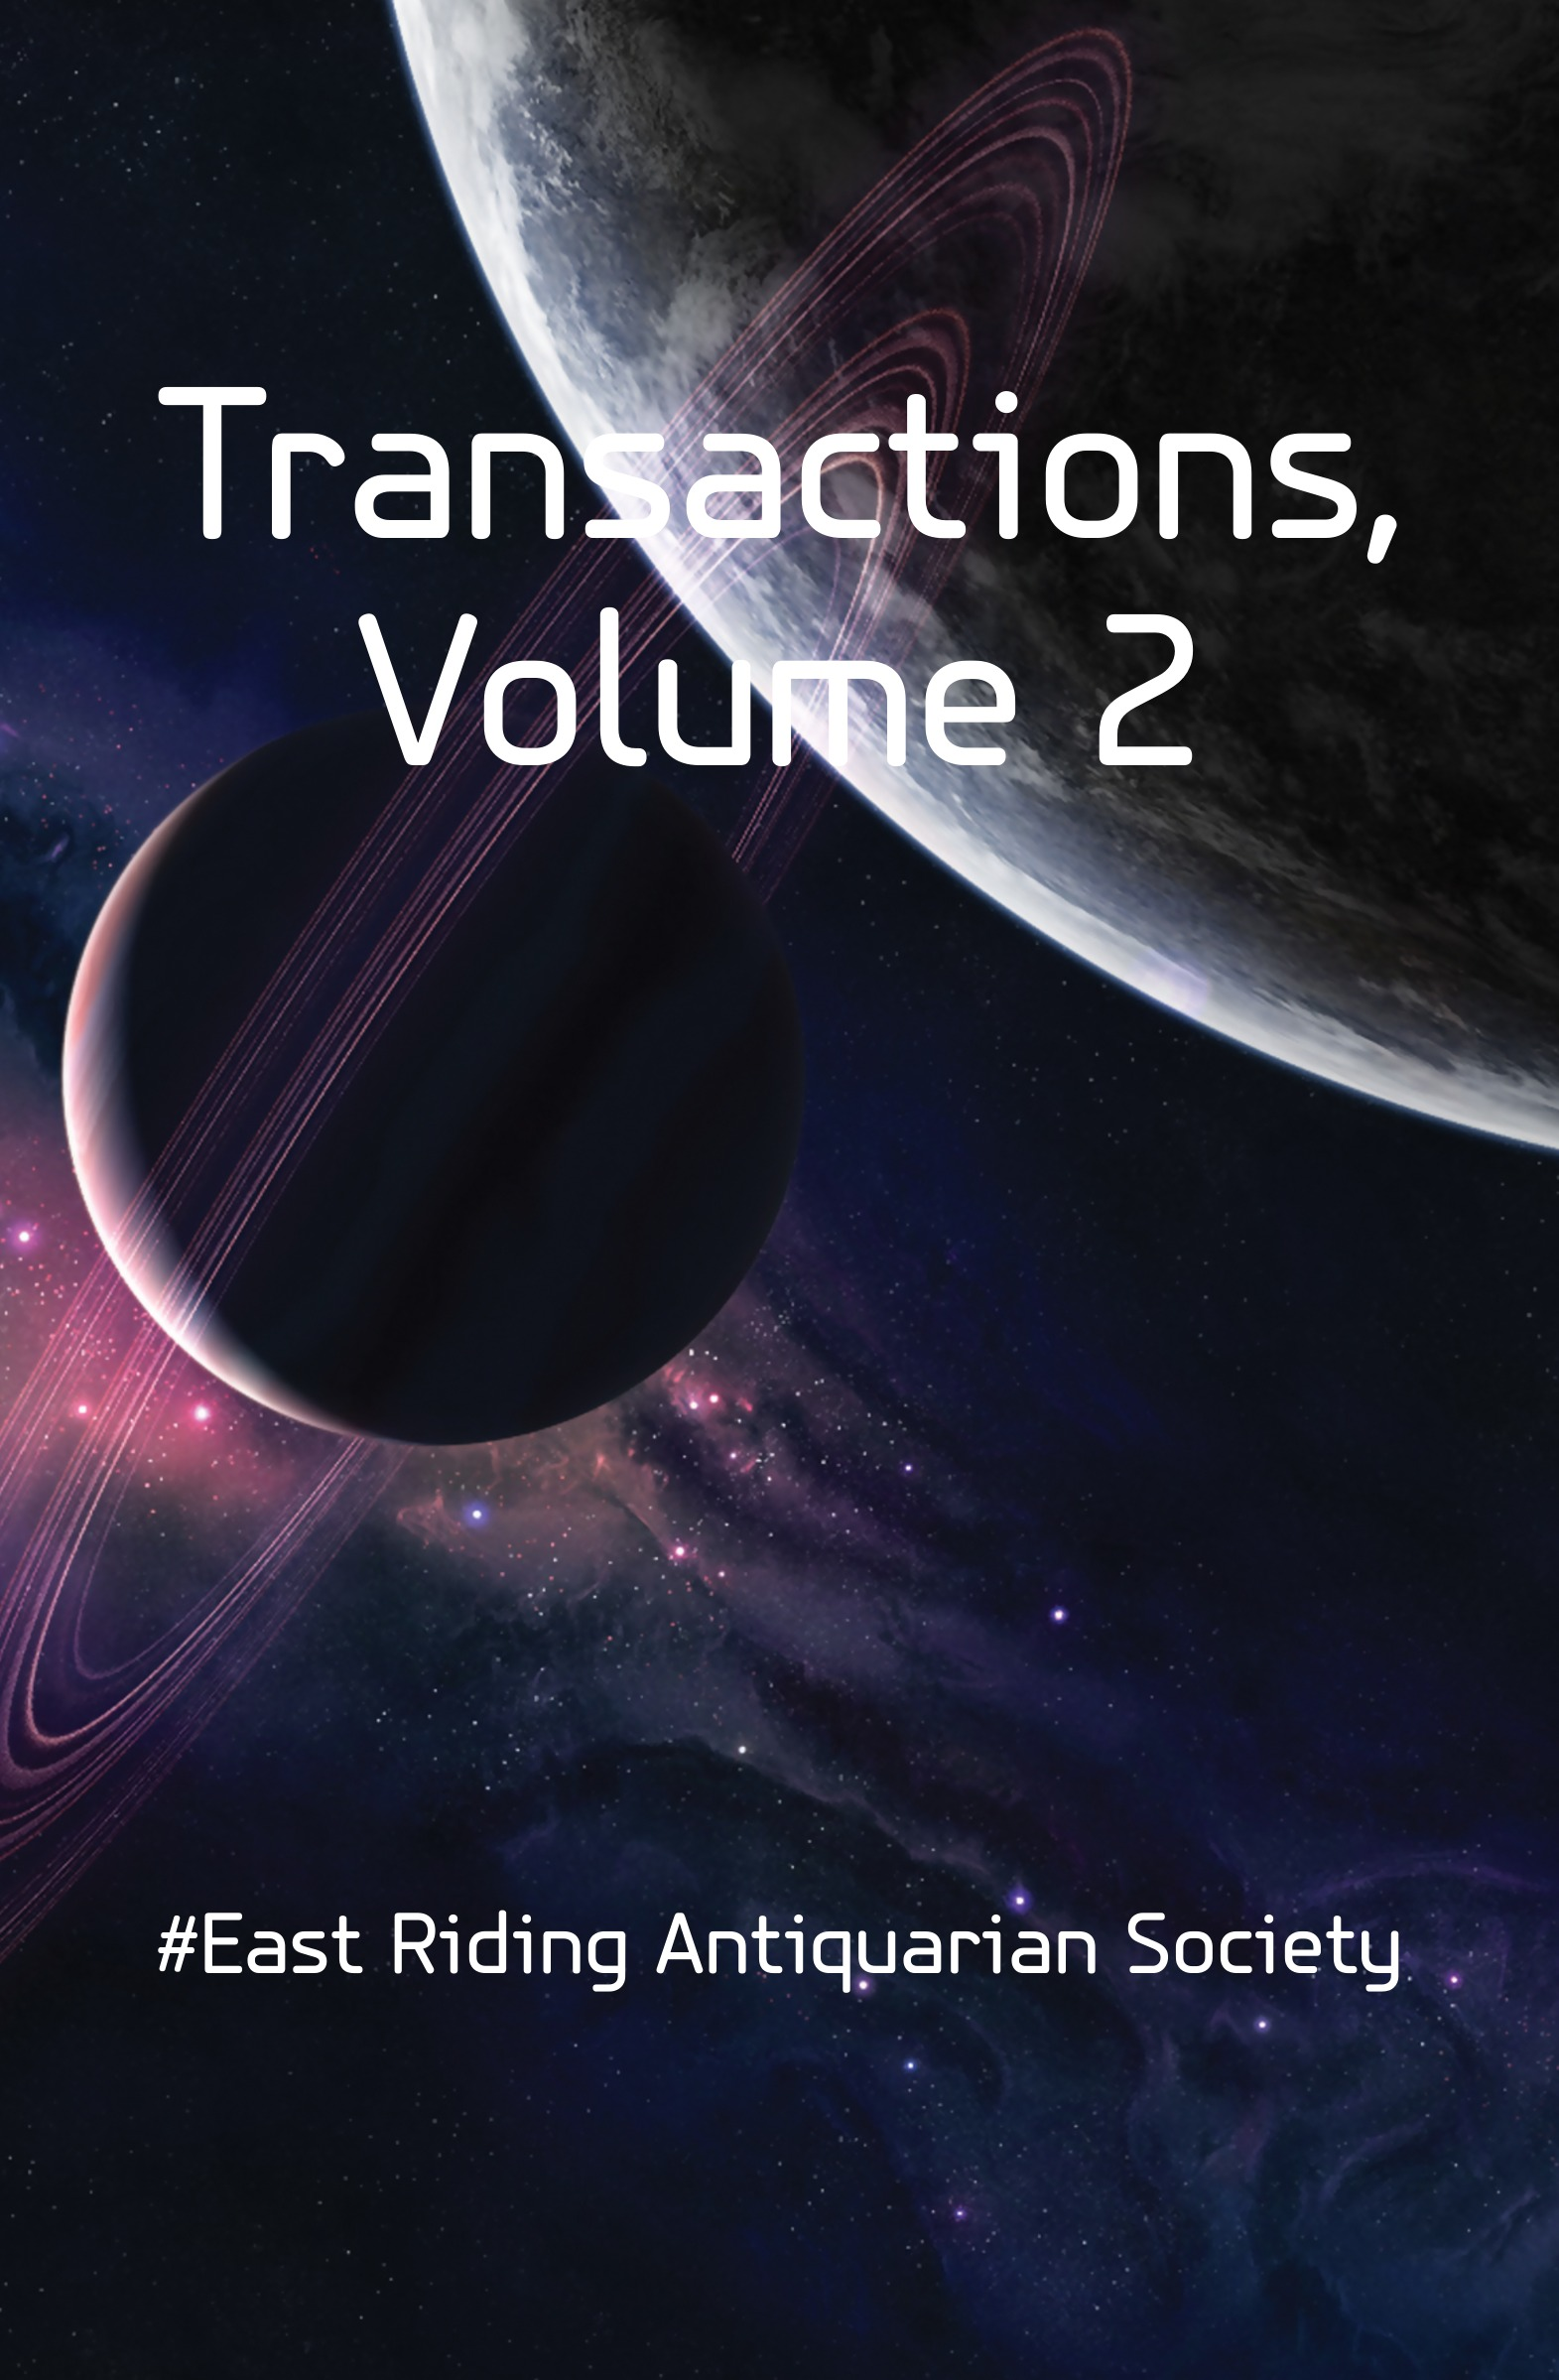 East Riding Antiquarian Society Transactions, Volume 2